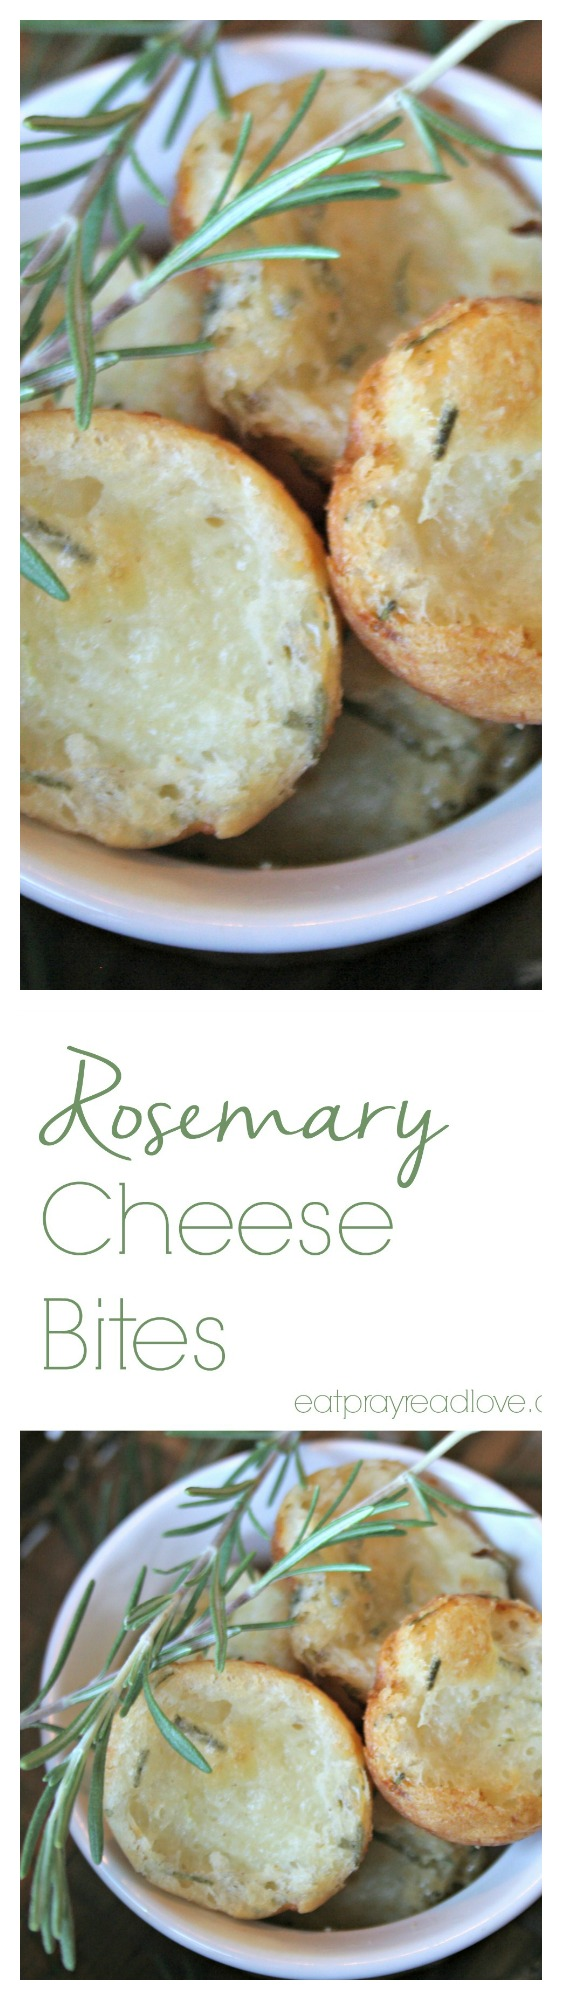 rosemary cheese bites 1